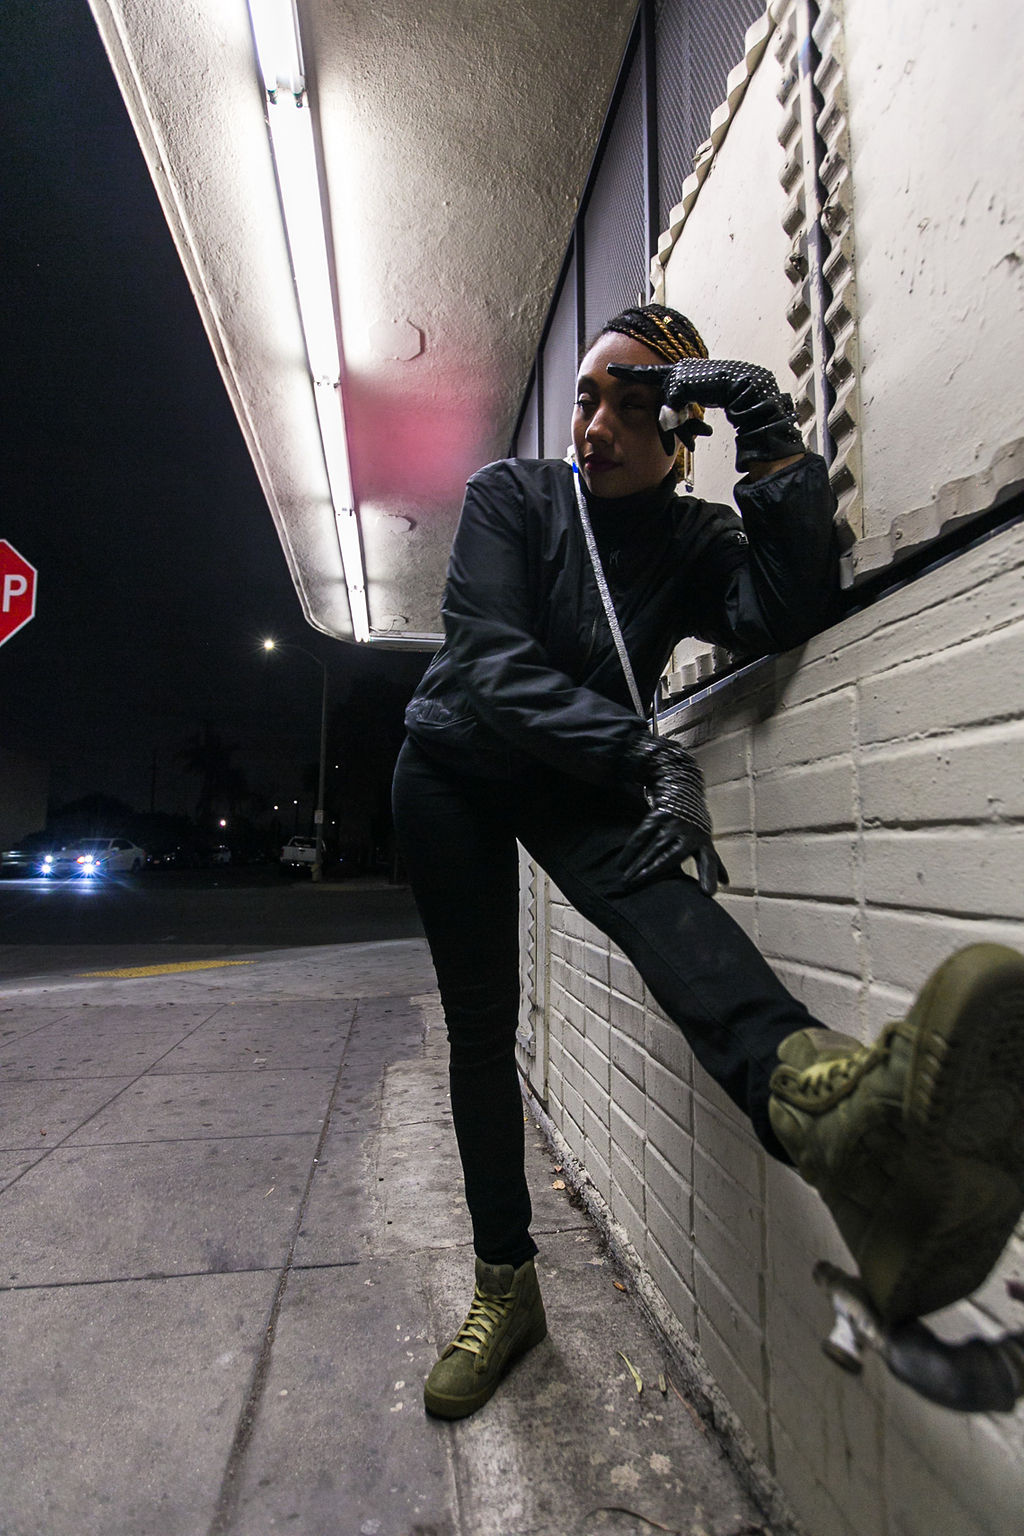 rsee-xmmtt-lcm-wear who you are-liquor store-asics-night photography